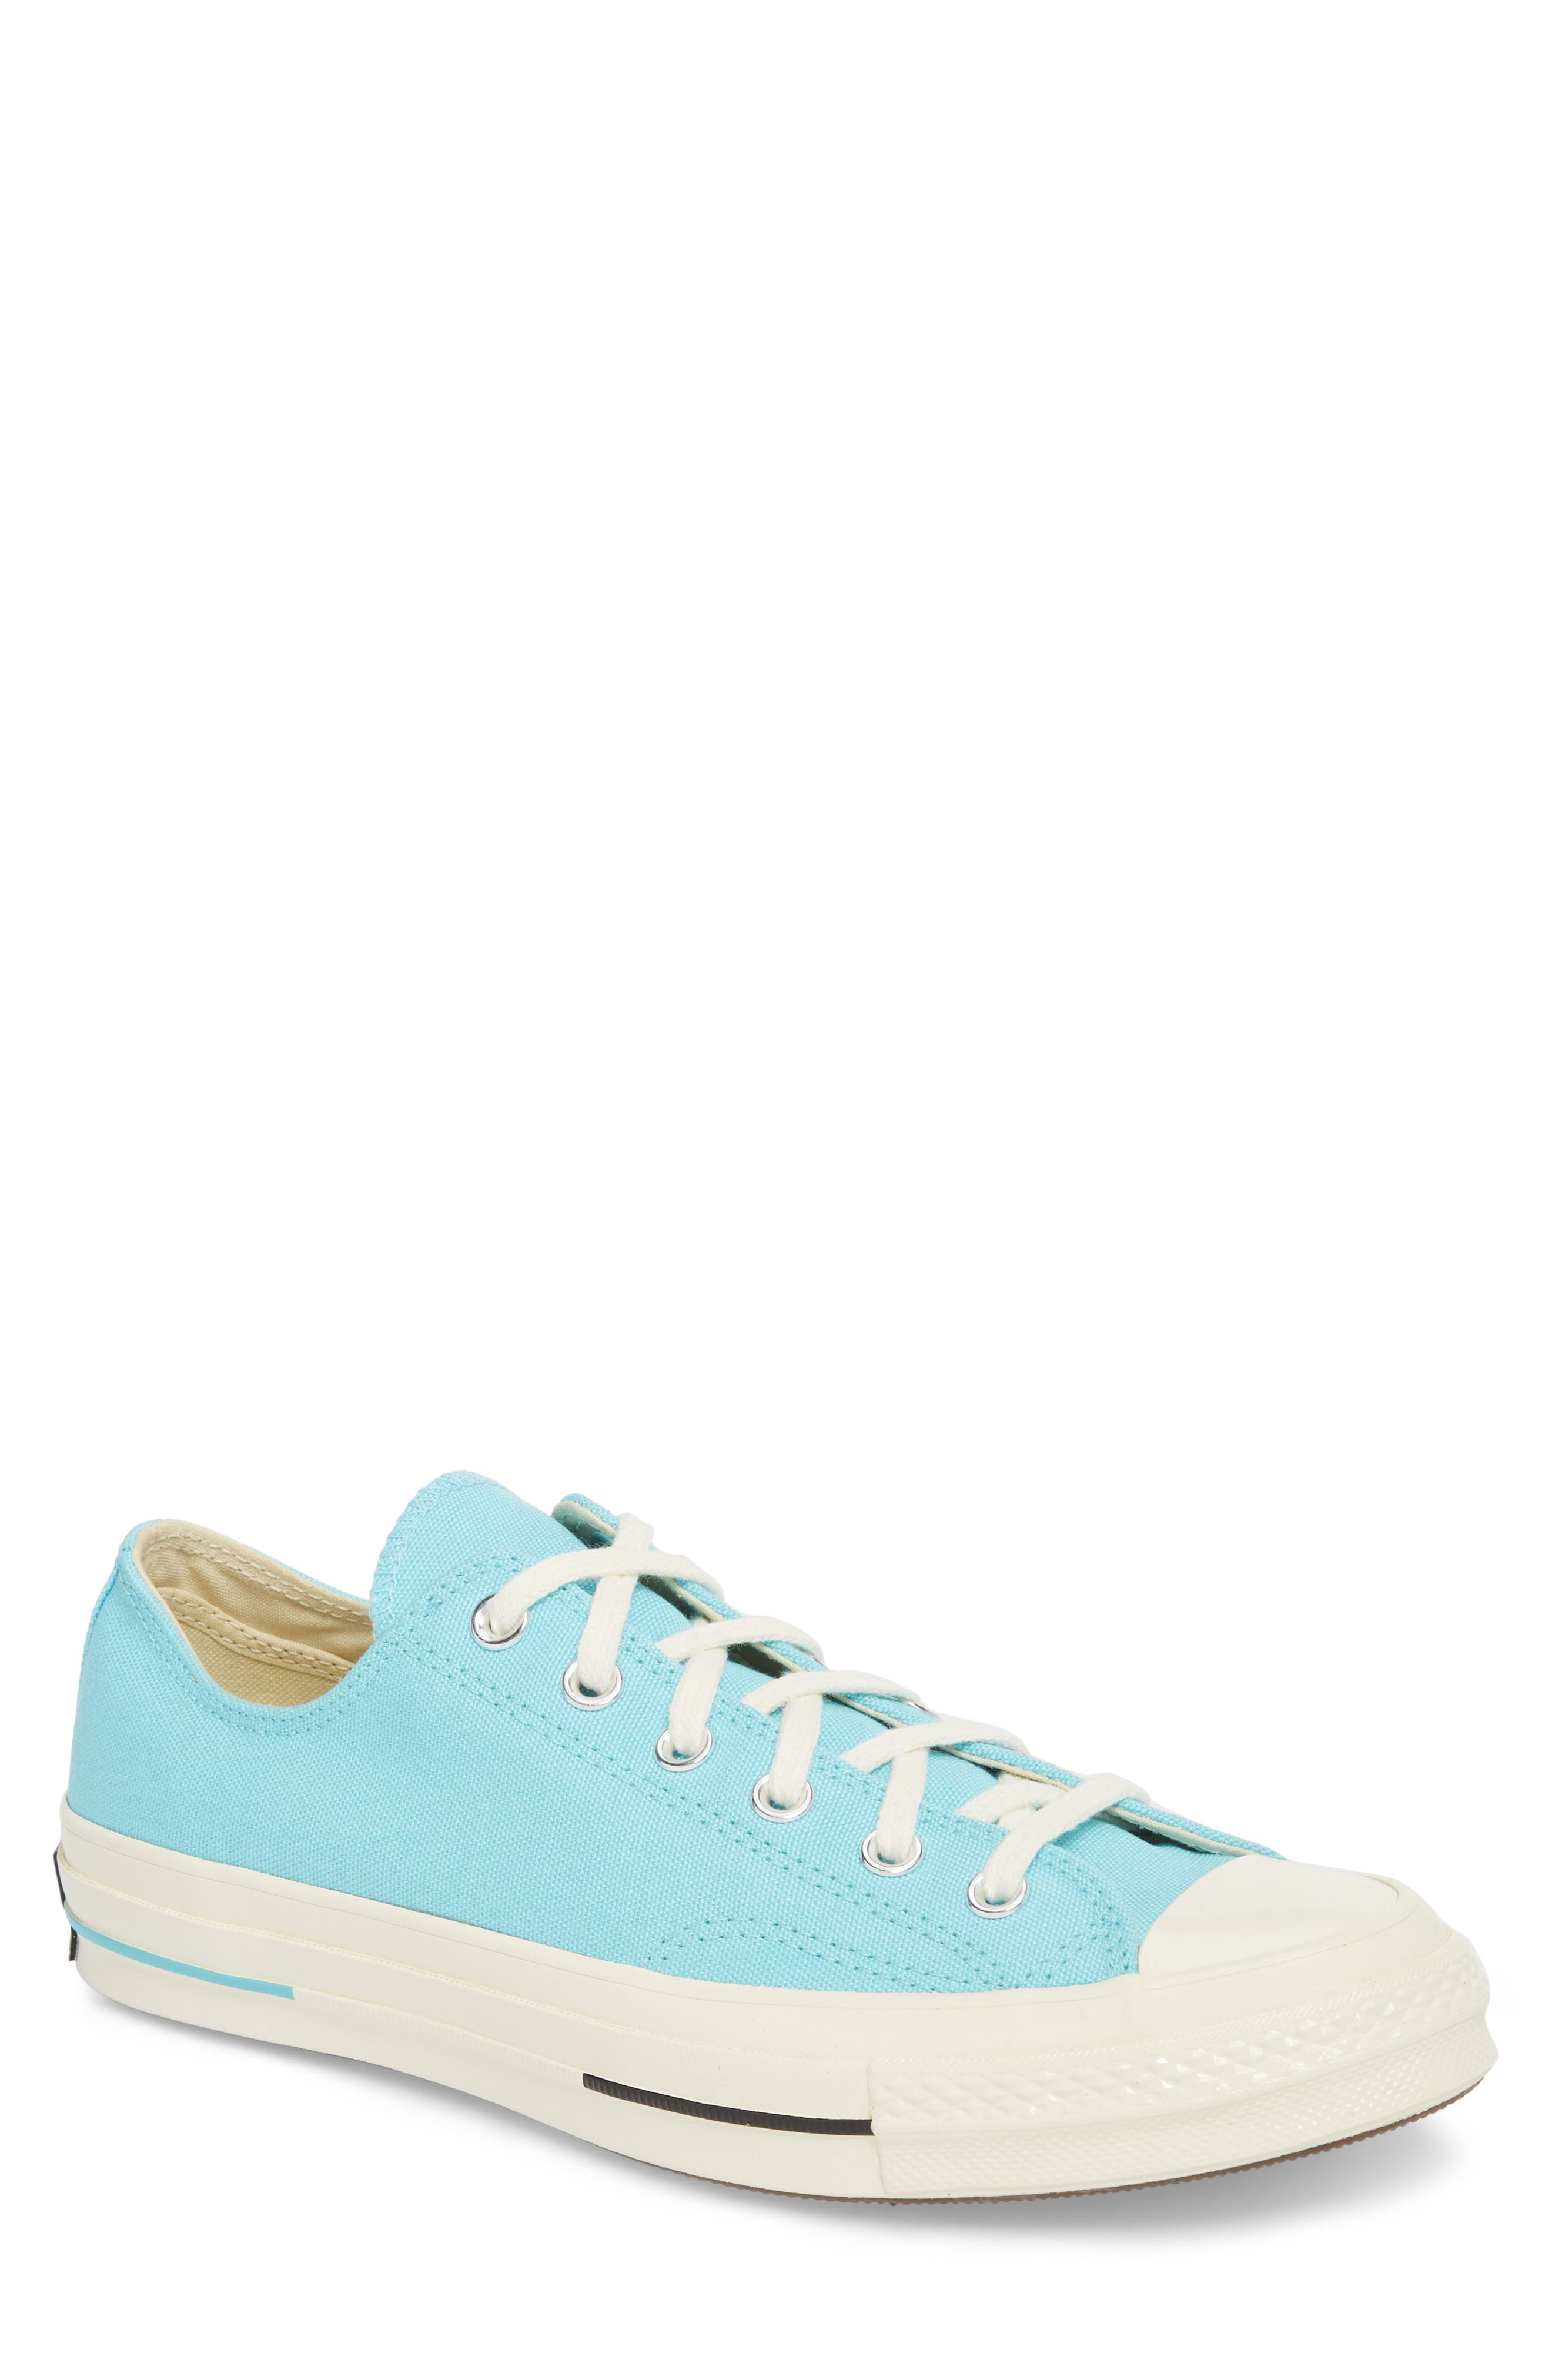 Chuck Taylor<sup>®</sup> All Star<sup>®</sup> 70 Brights Low Top Sneaker,                         Main,                         color, 486